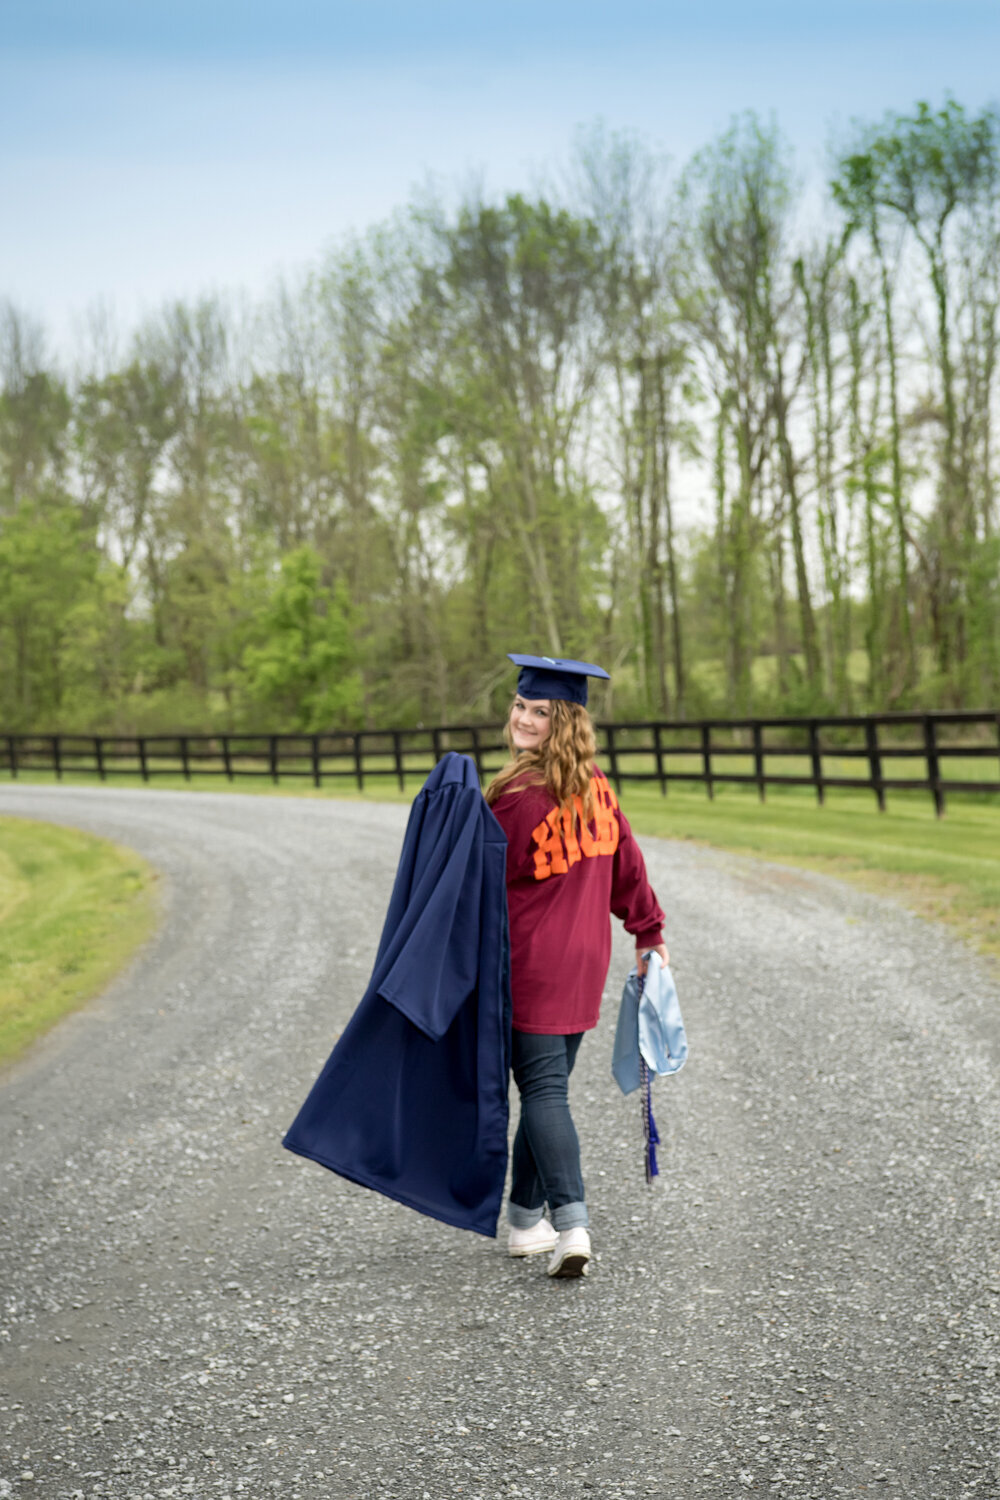 Cap and gown hokie virginia tech graduation photos